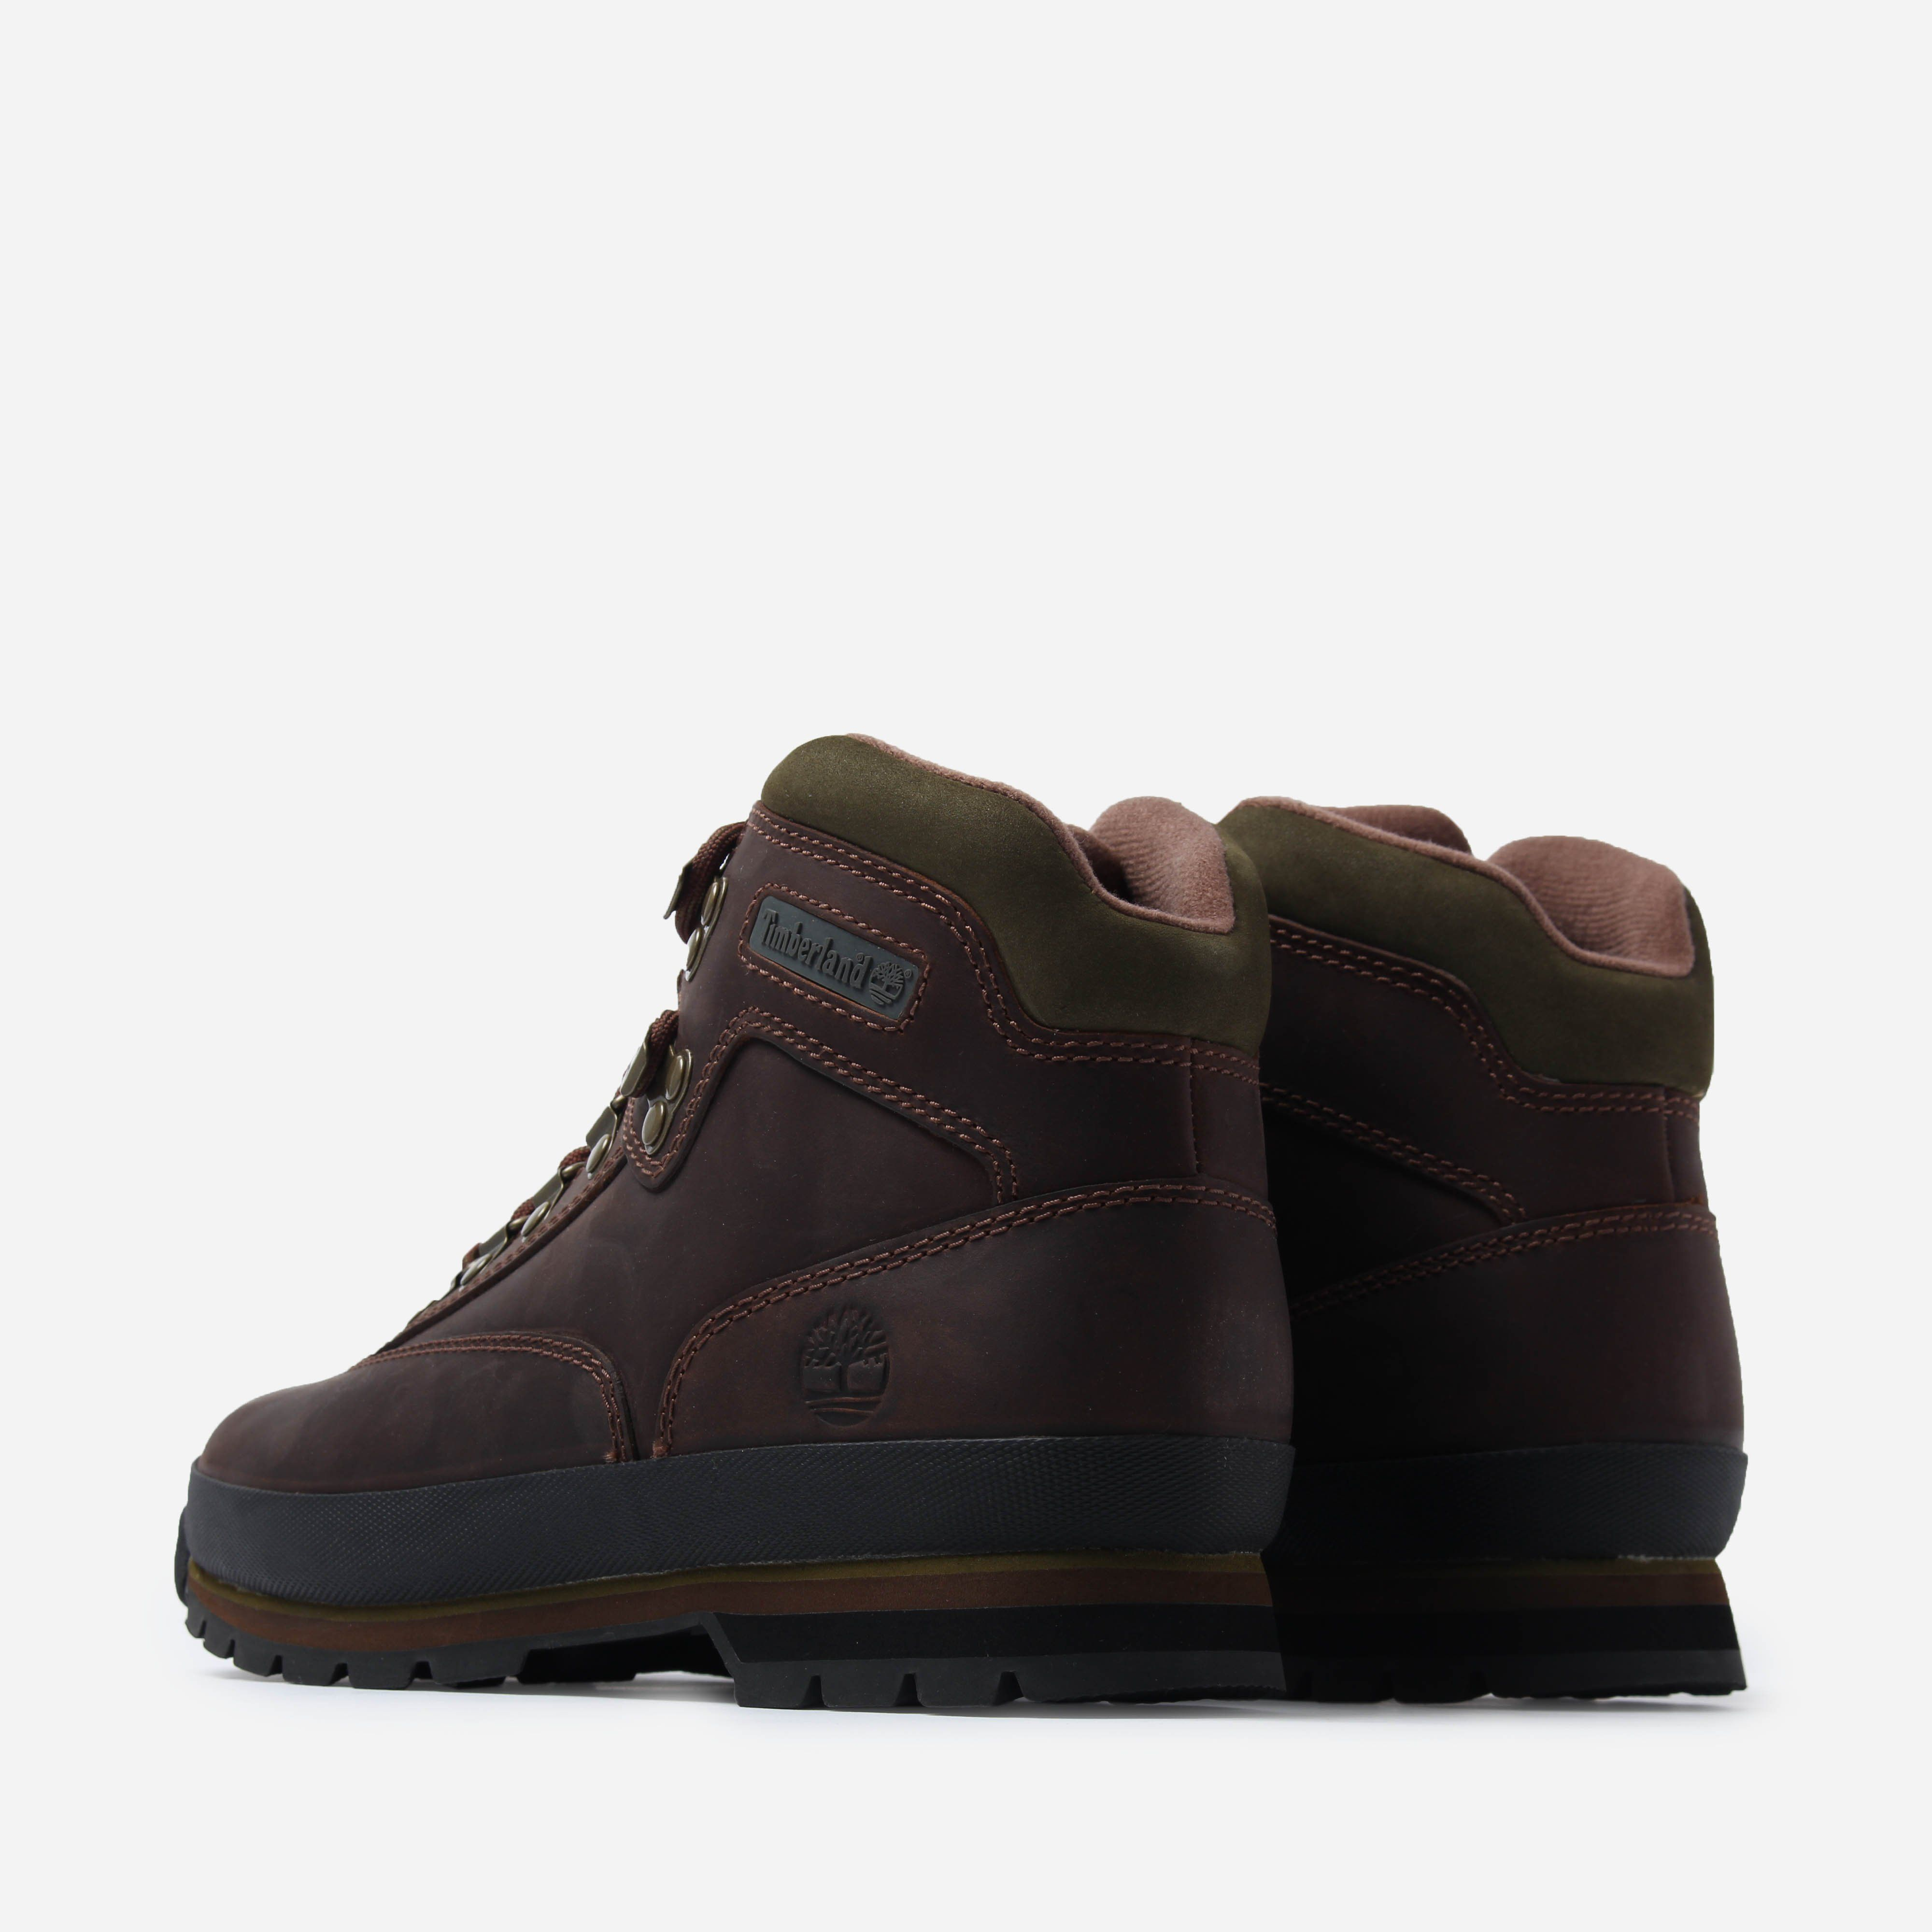 Timberland TB95100 EURO HIKER LEATHER